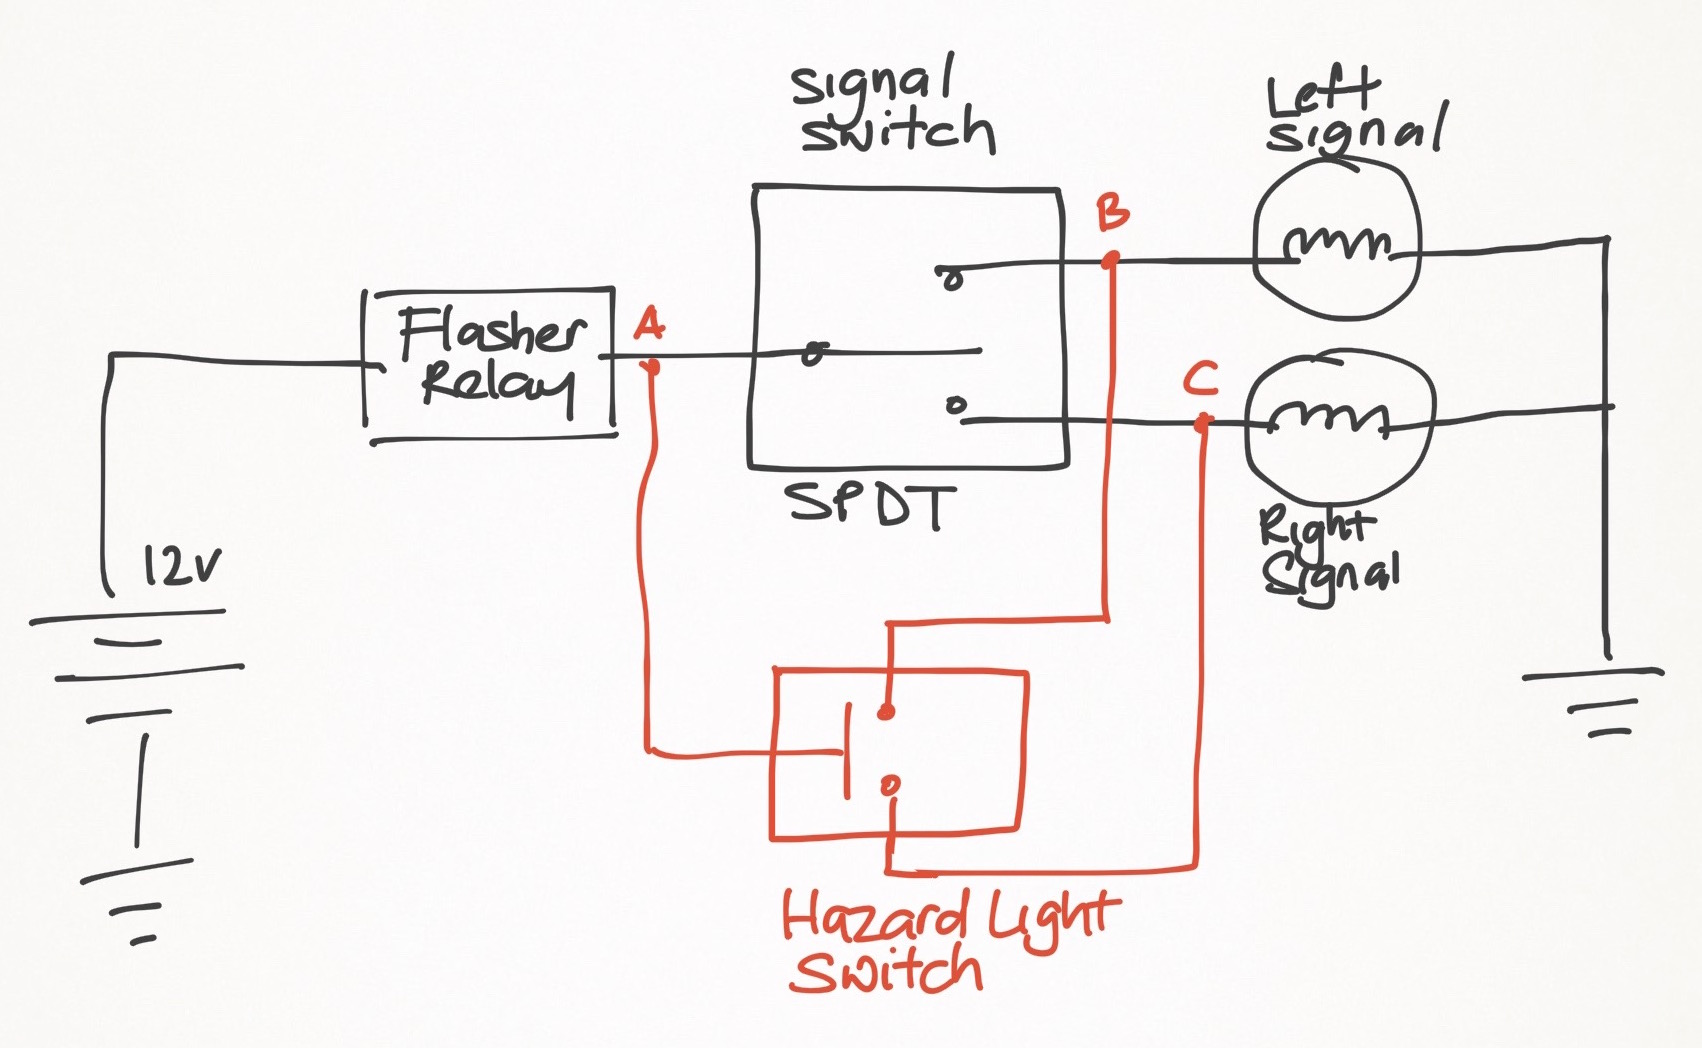 Wiring Diagram For Four Way Switch : Weekend ns hazard light project ramblings of a